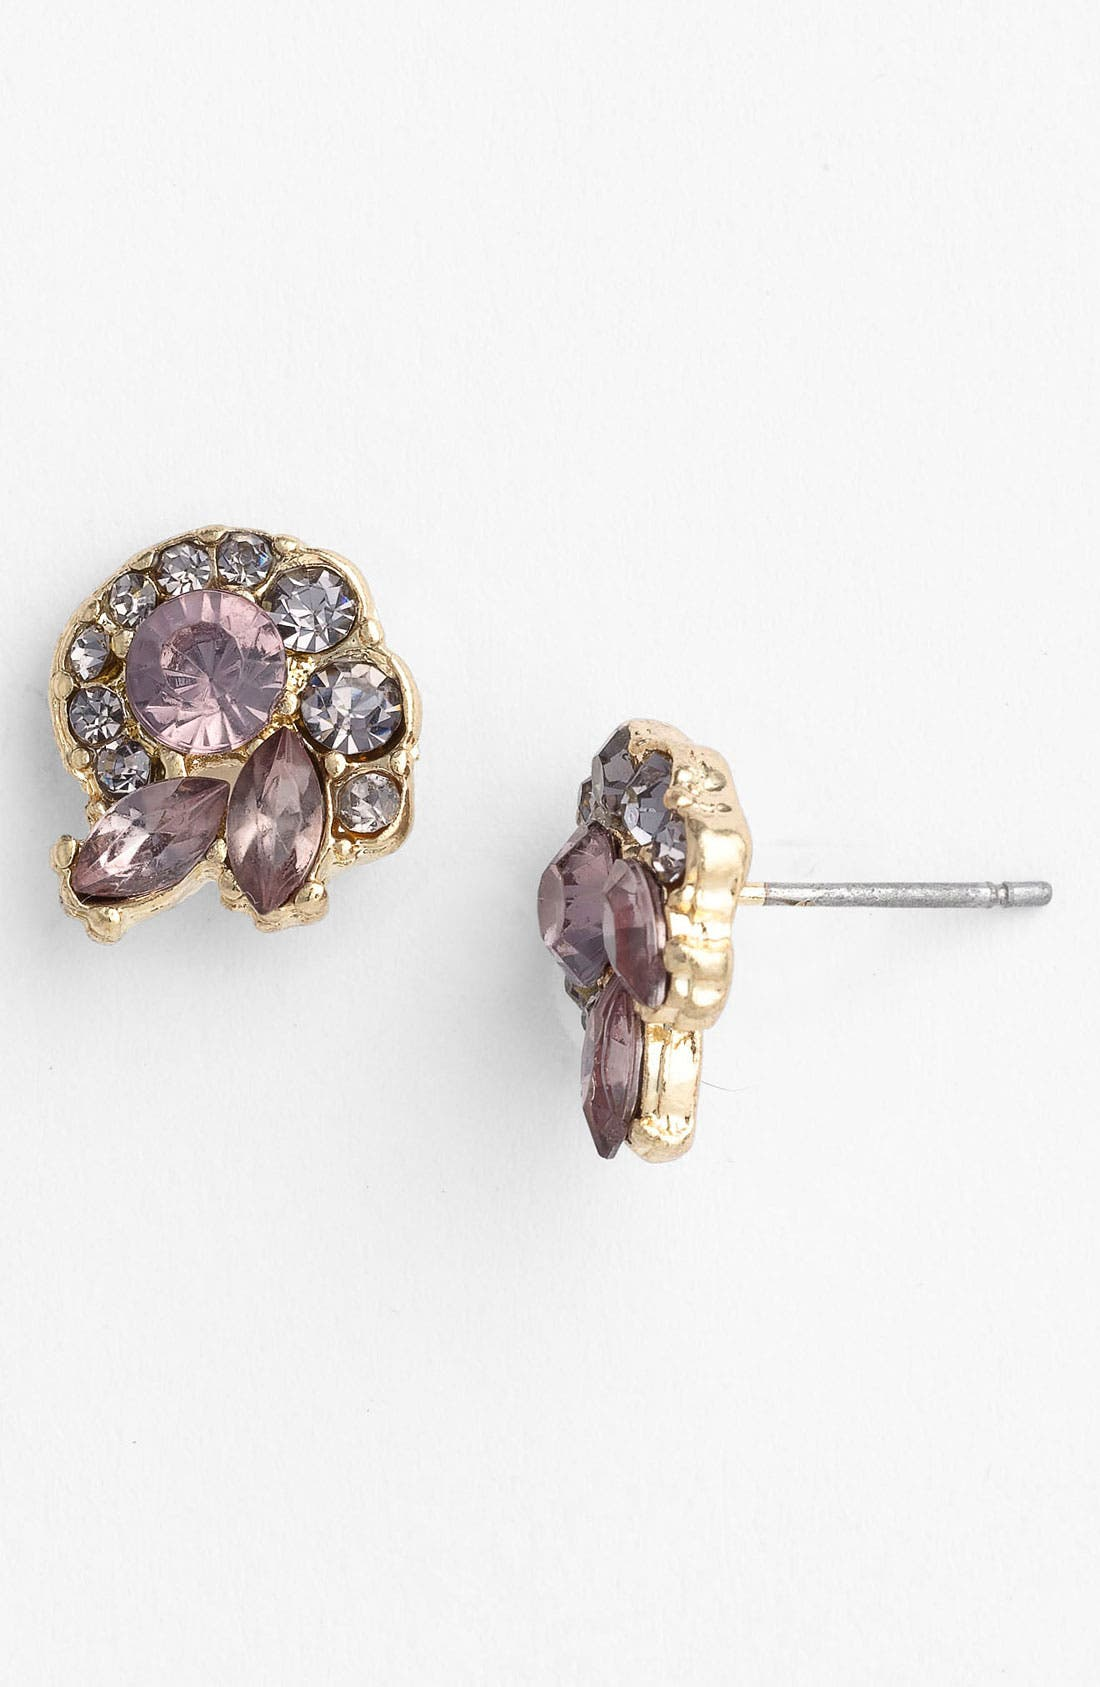 Main Image - Carole 'Nautilus' Rhinestone Stud Earrings